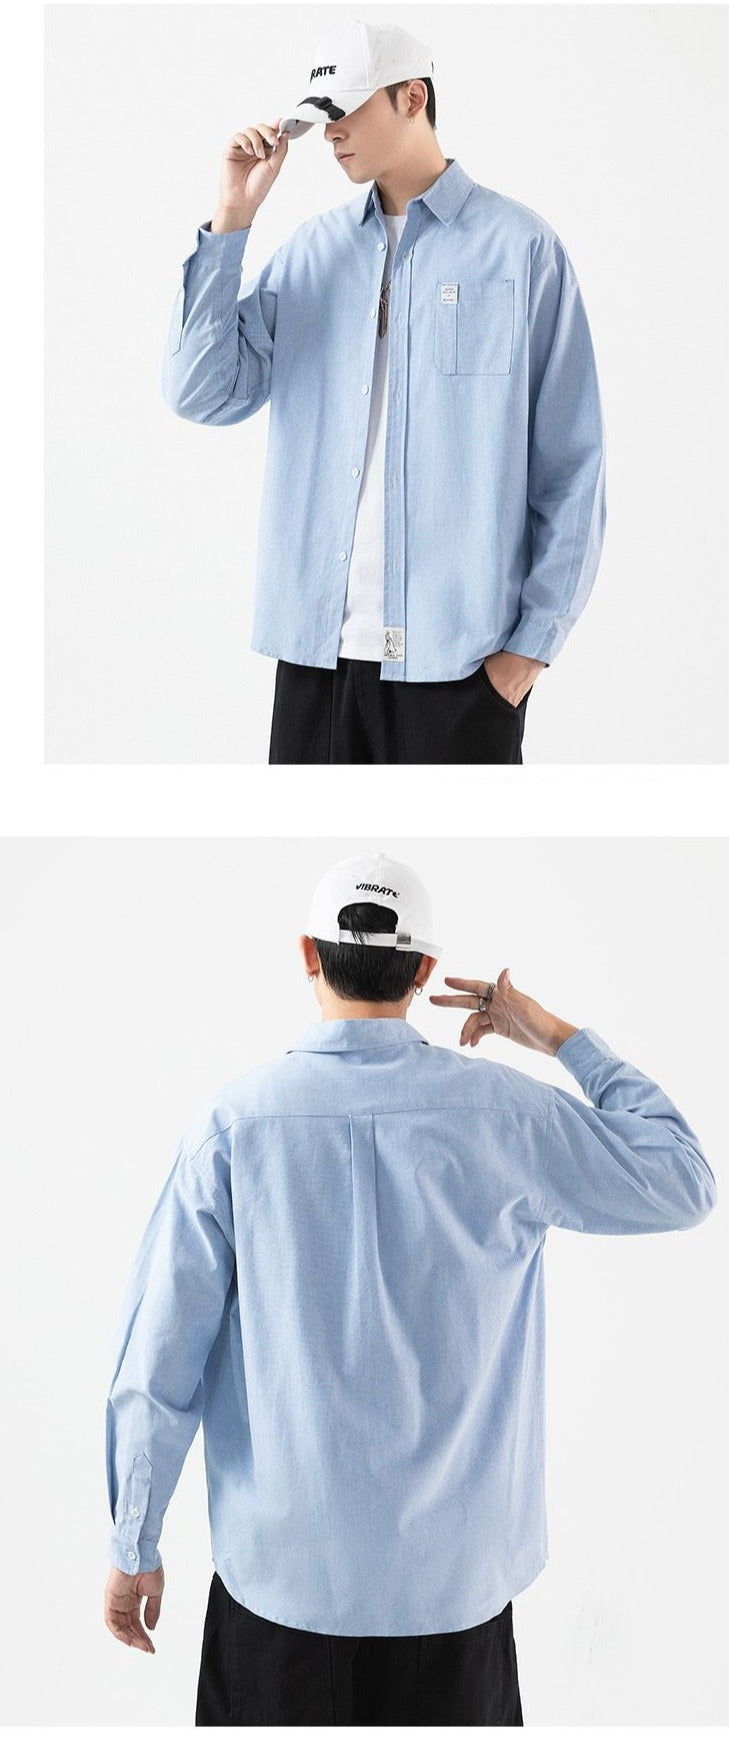 Men'S Long Sleeve Shirt Loose Japanese Streetwear Punk Casual Spring Autumn Plus Oversized M-5XL